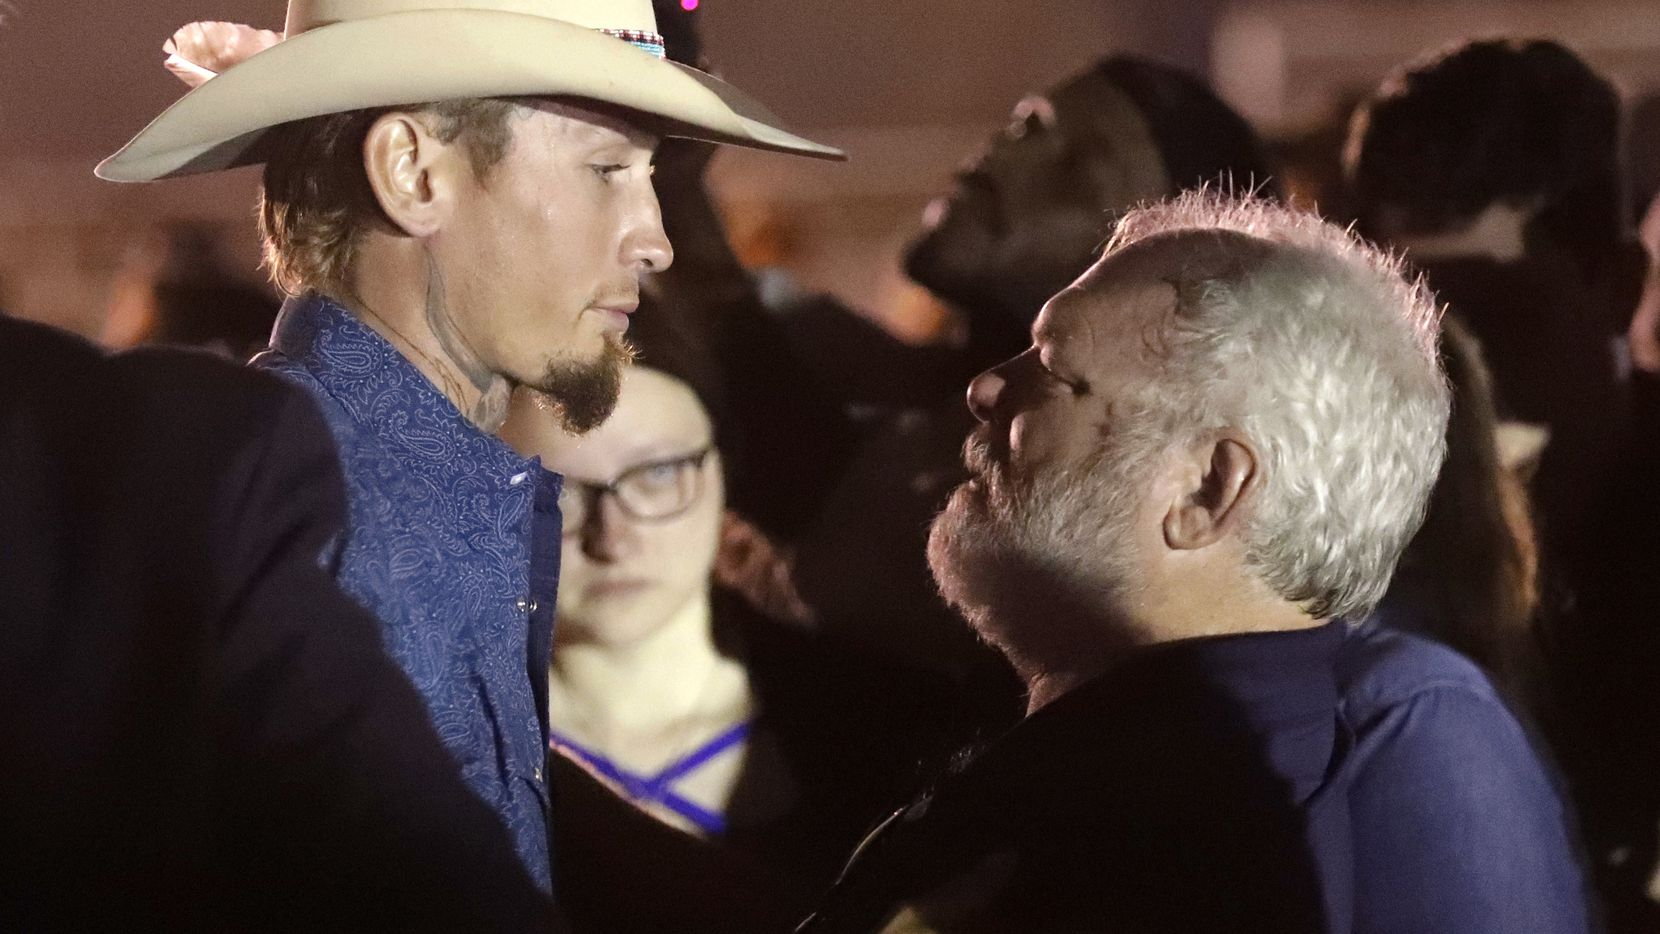 Stephen Willeford (right) and Johnnie Langendorff during a Nov. 6 vigil for the victims of the Sutherland Springs First Baptist Church.